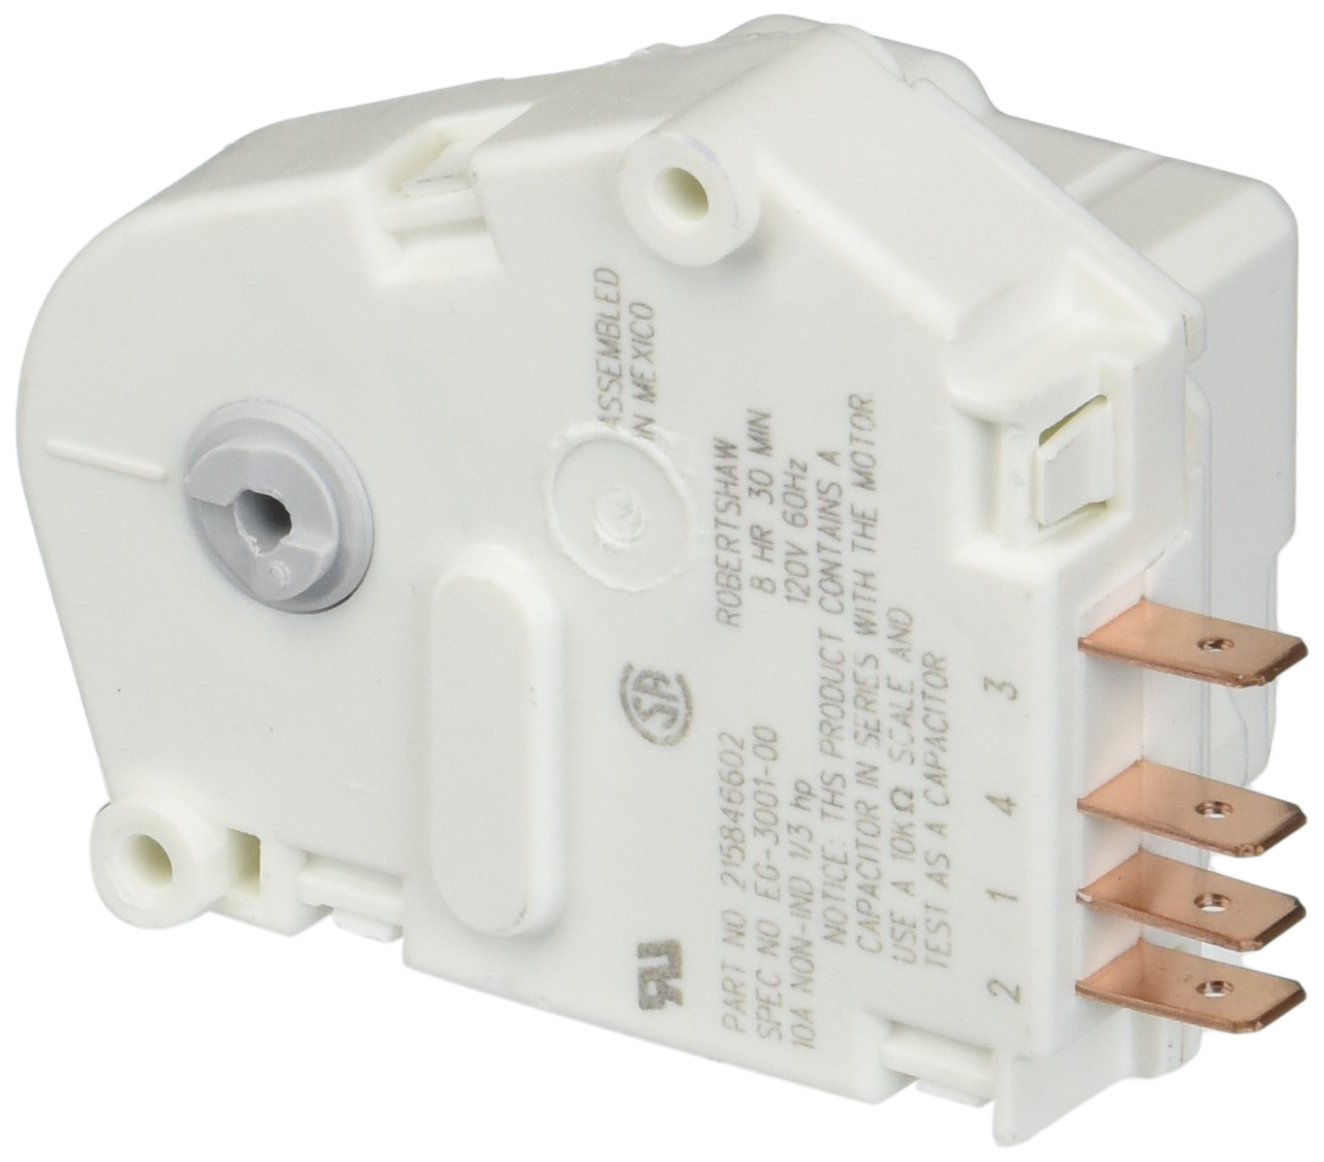 PART # 215846602 OR AP2111929 GENUINE FACTORY OEM ORIGINAL REFRIGERATOR DEFROST TIMER CONTROL FOR FRIGIDAIRE AND WHITE WESTINGHOUSE